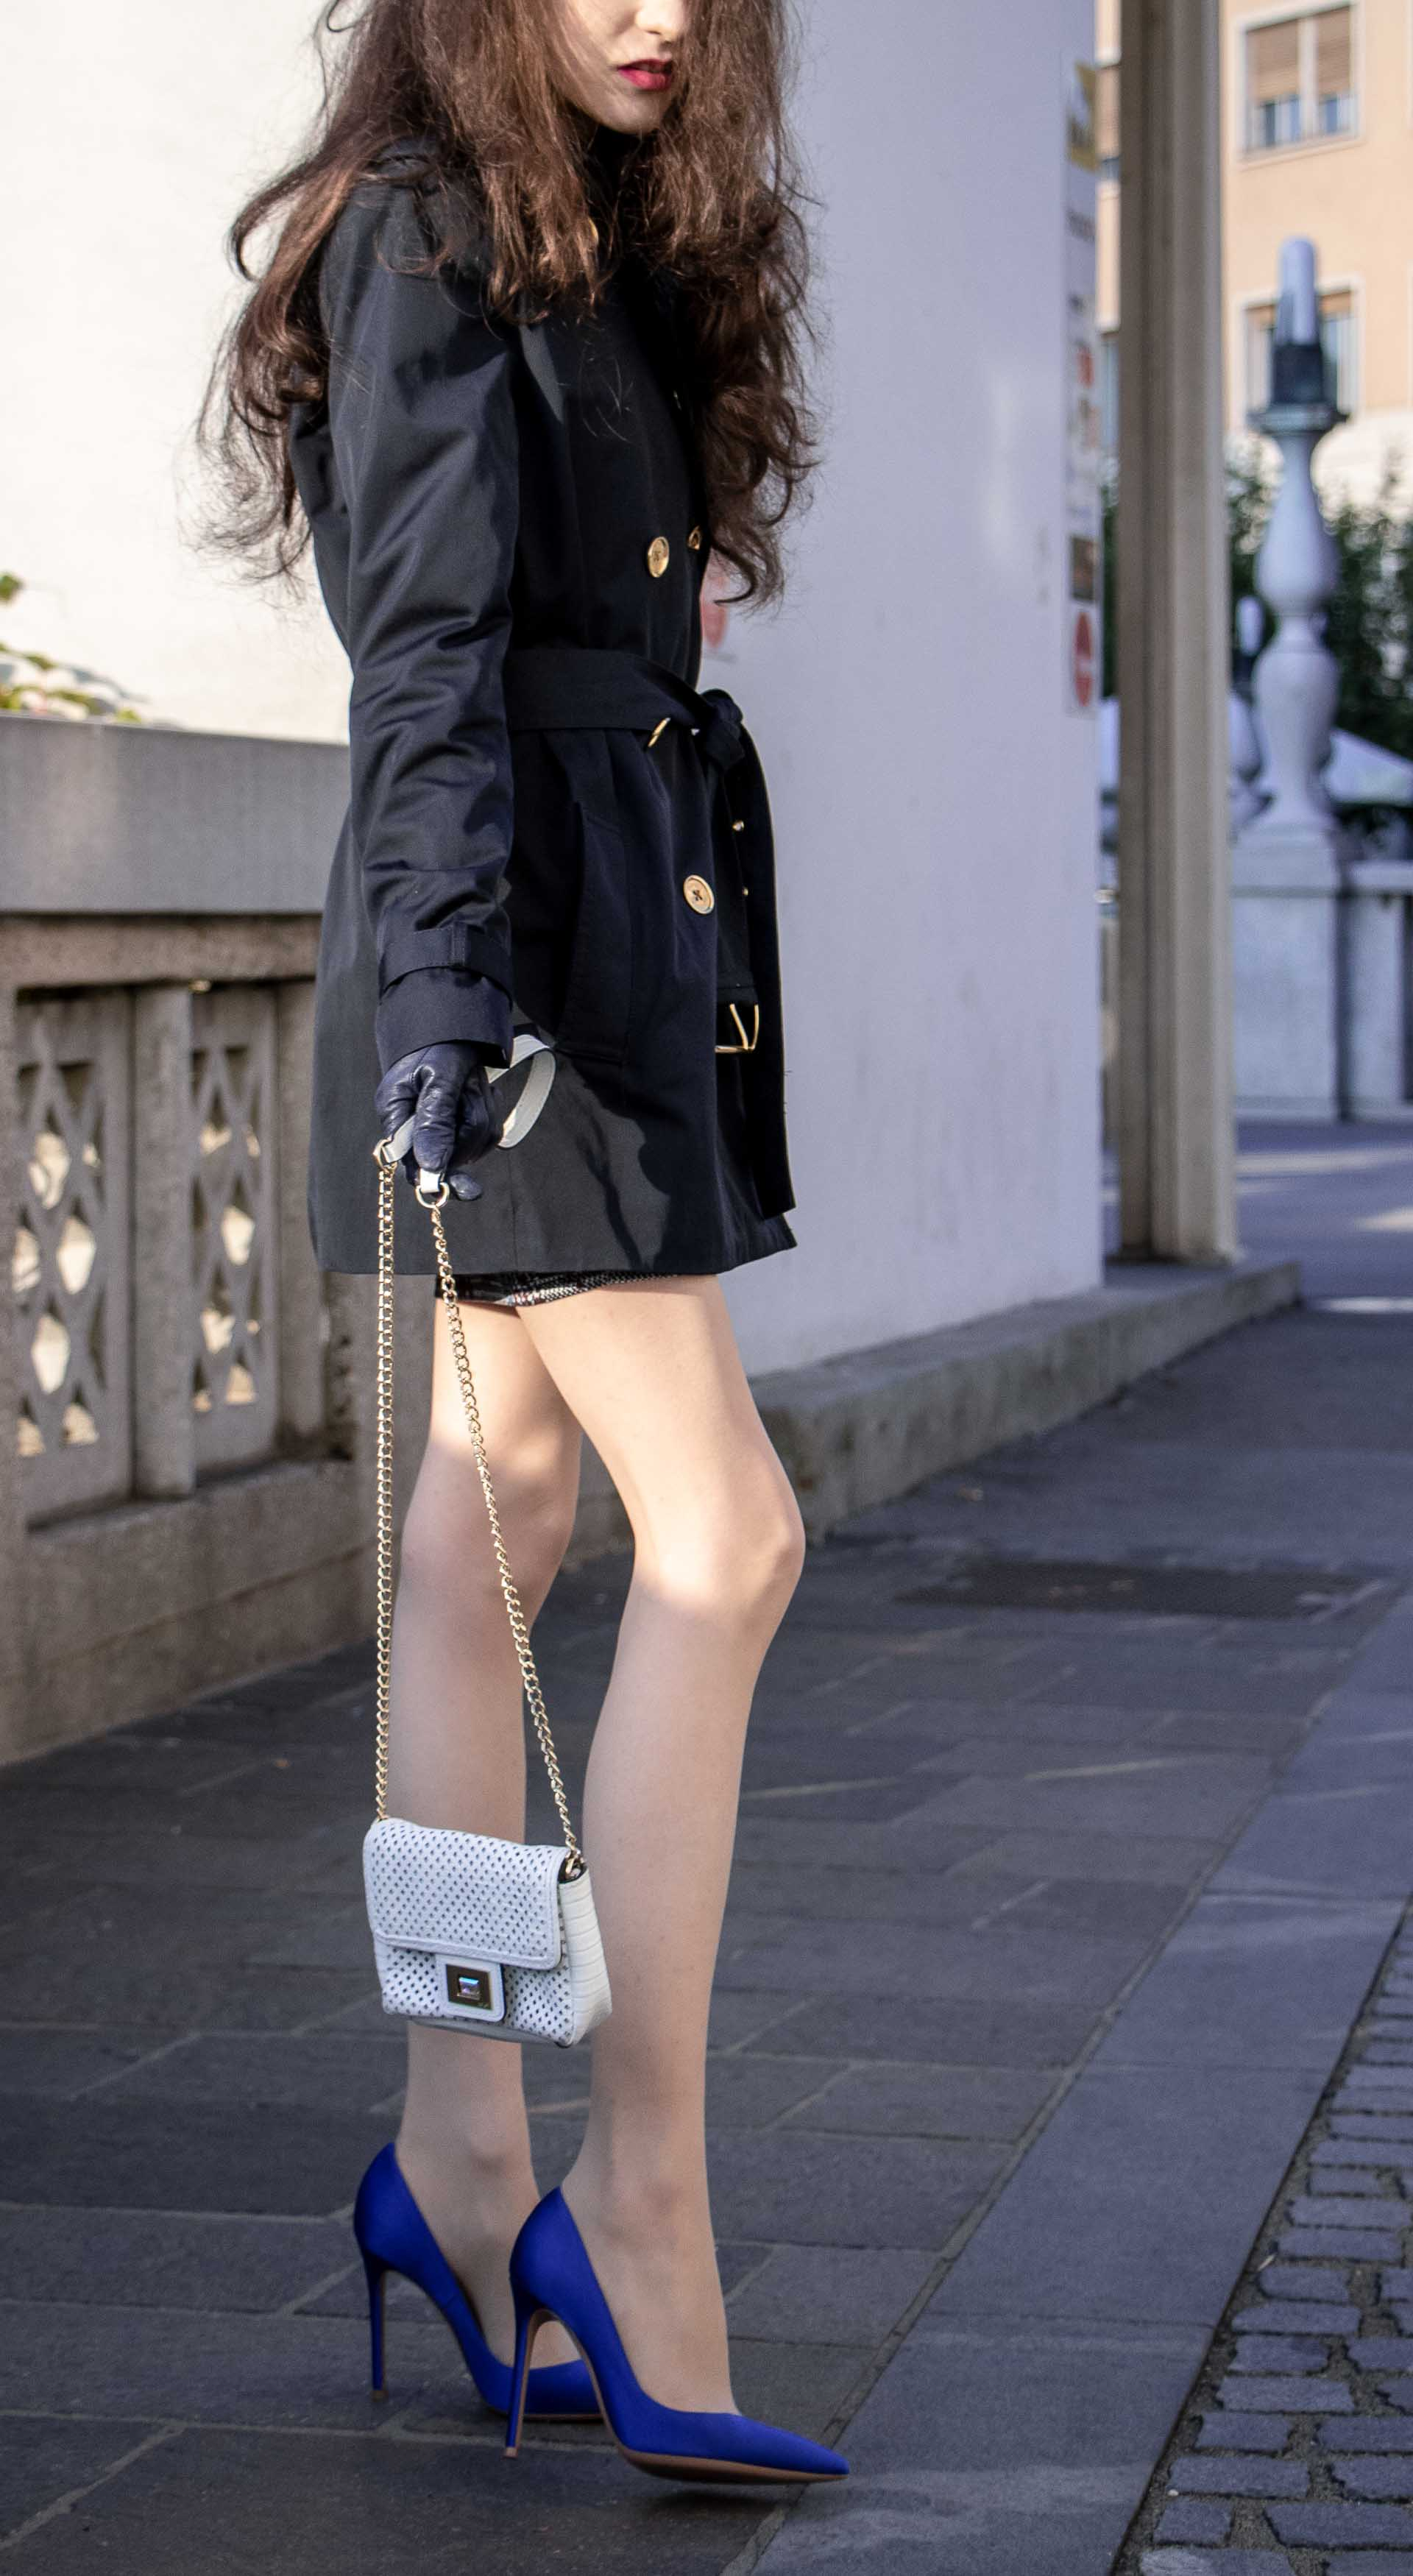 Beautiful Slovenian Fashion Blogger Veronika Lipar of Brunette from Wall wearing dark navy Michael Kors short trench coat, Gianvito Rossi blue satin court shoes, white chain shoulder bag morning after party